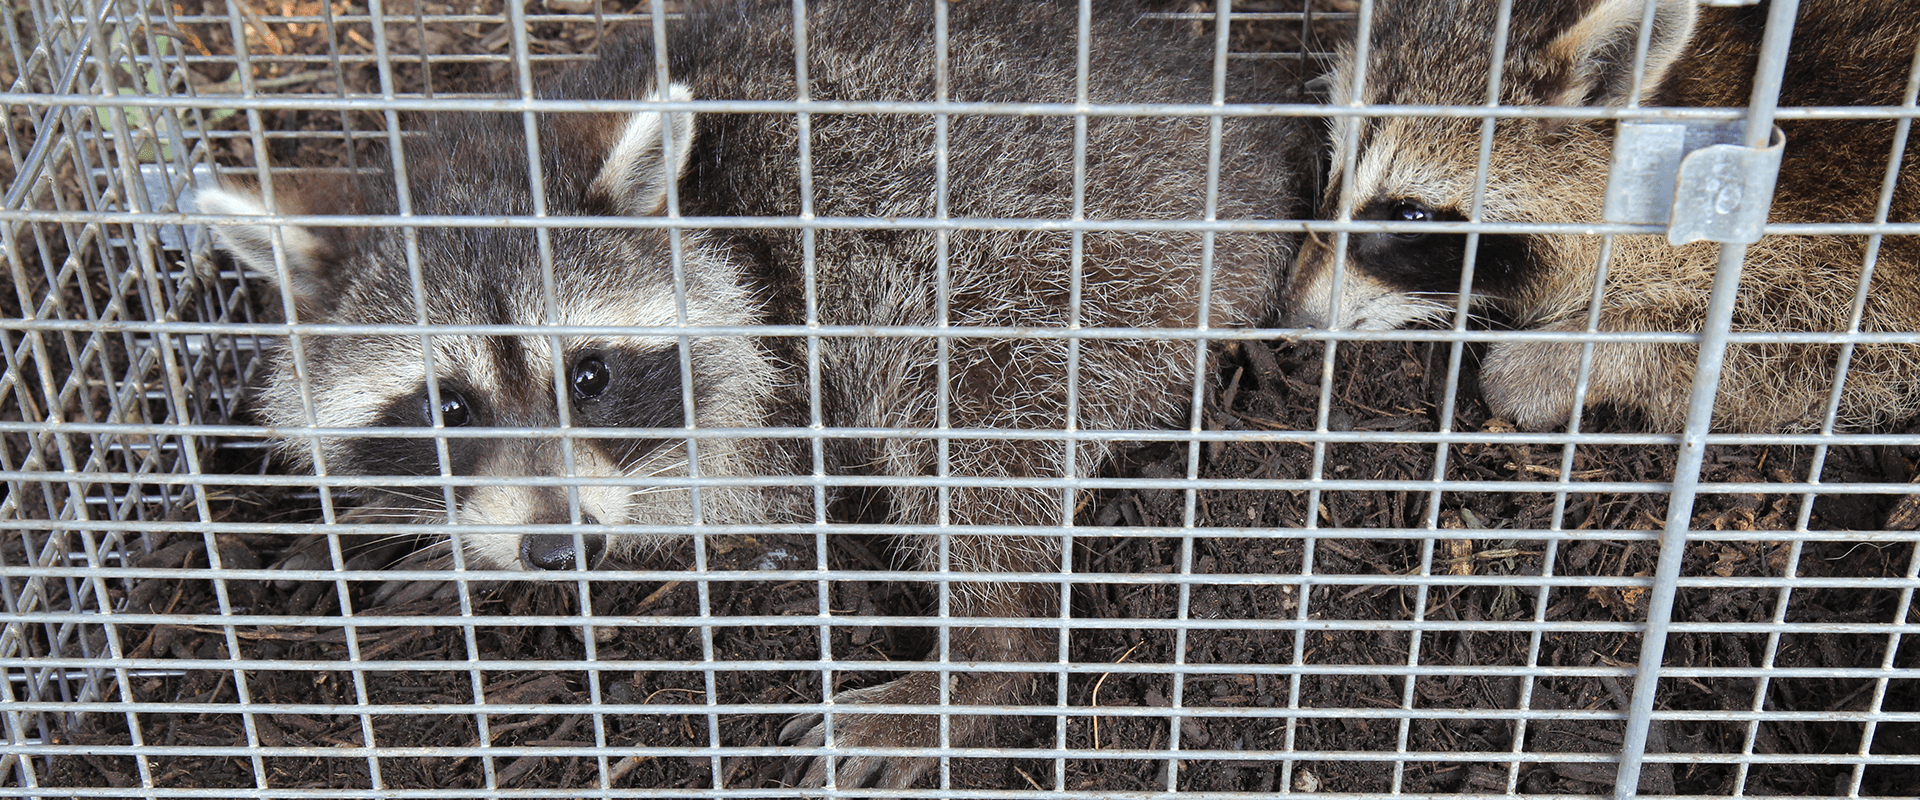 two raccoons in a wire cage